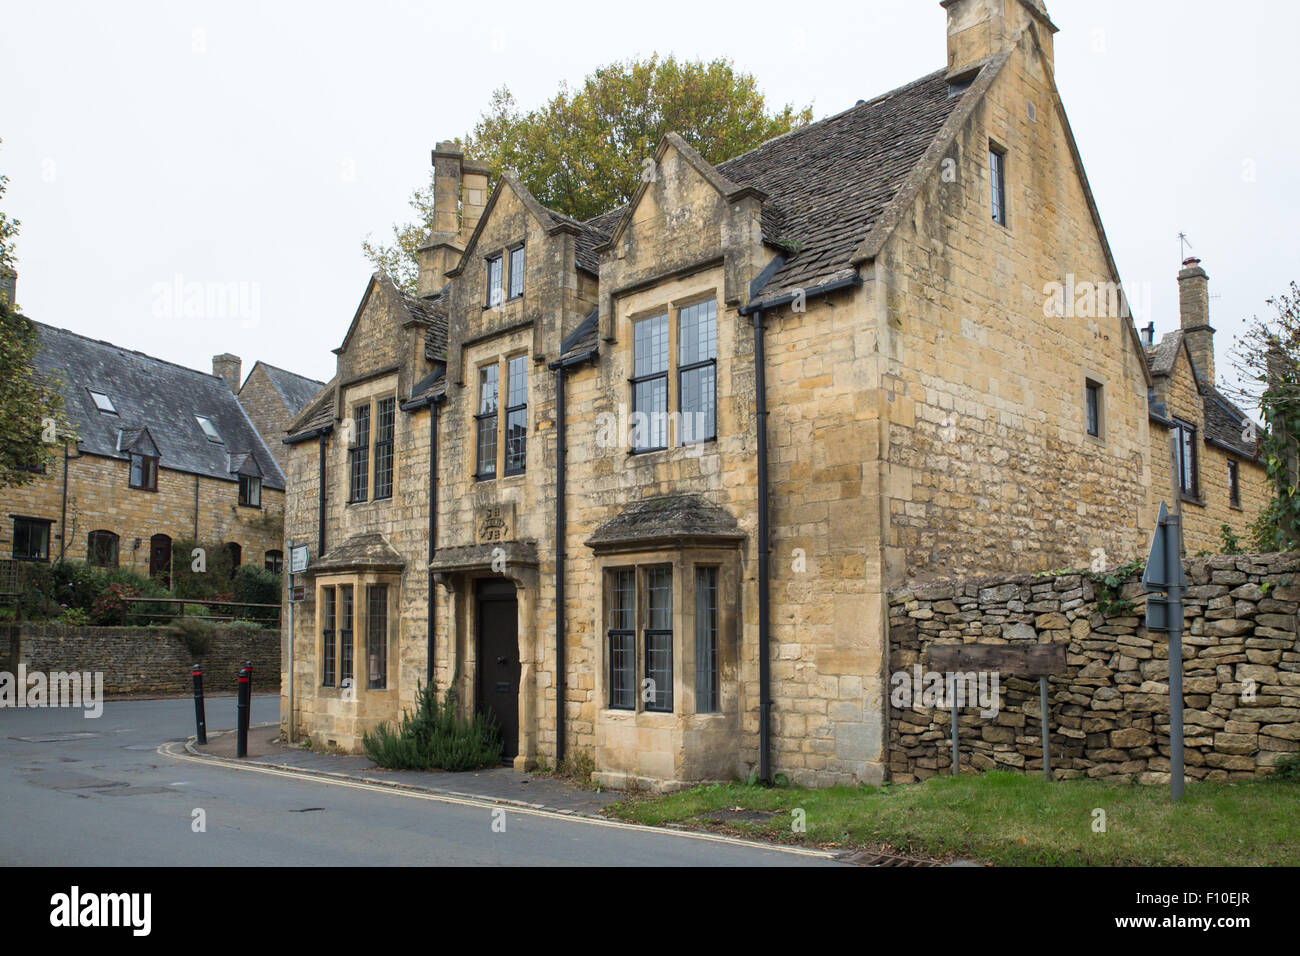 Typical Architecture On Old Stone House In Cotswolds English Countryside